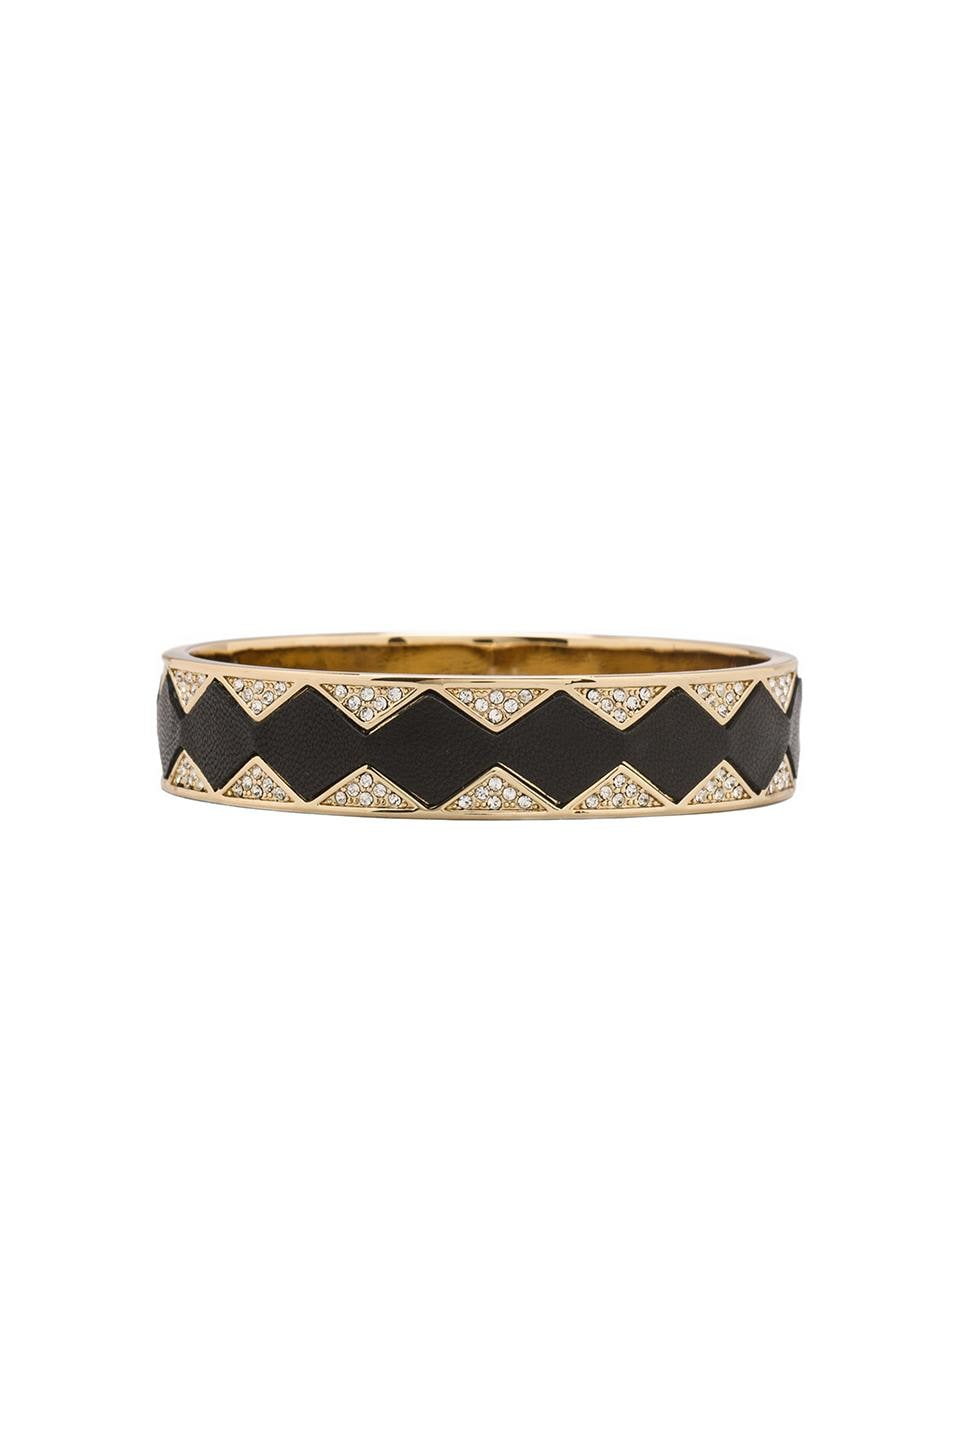 House of Harlow 1960 House of Harlow Sunburst Bangle in Gold Tone Sunburst with Black